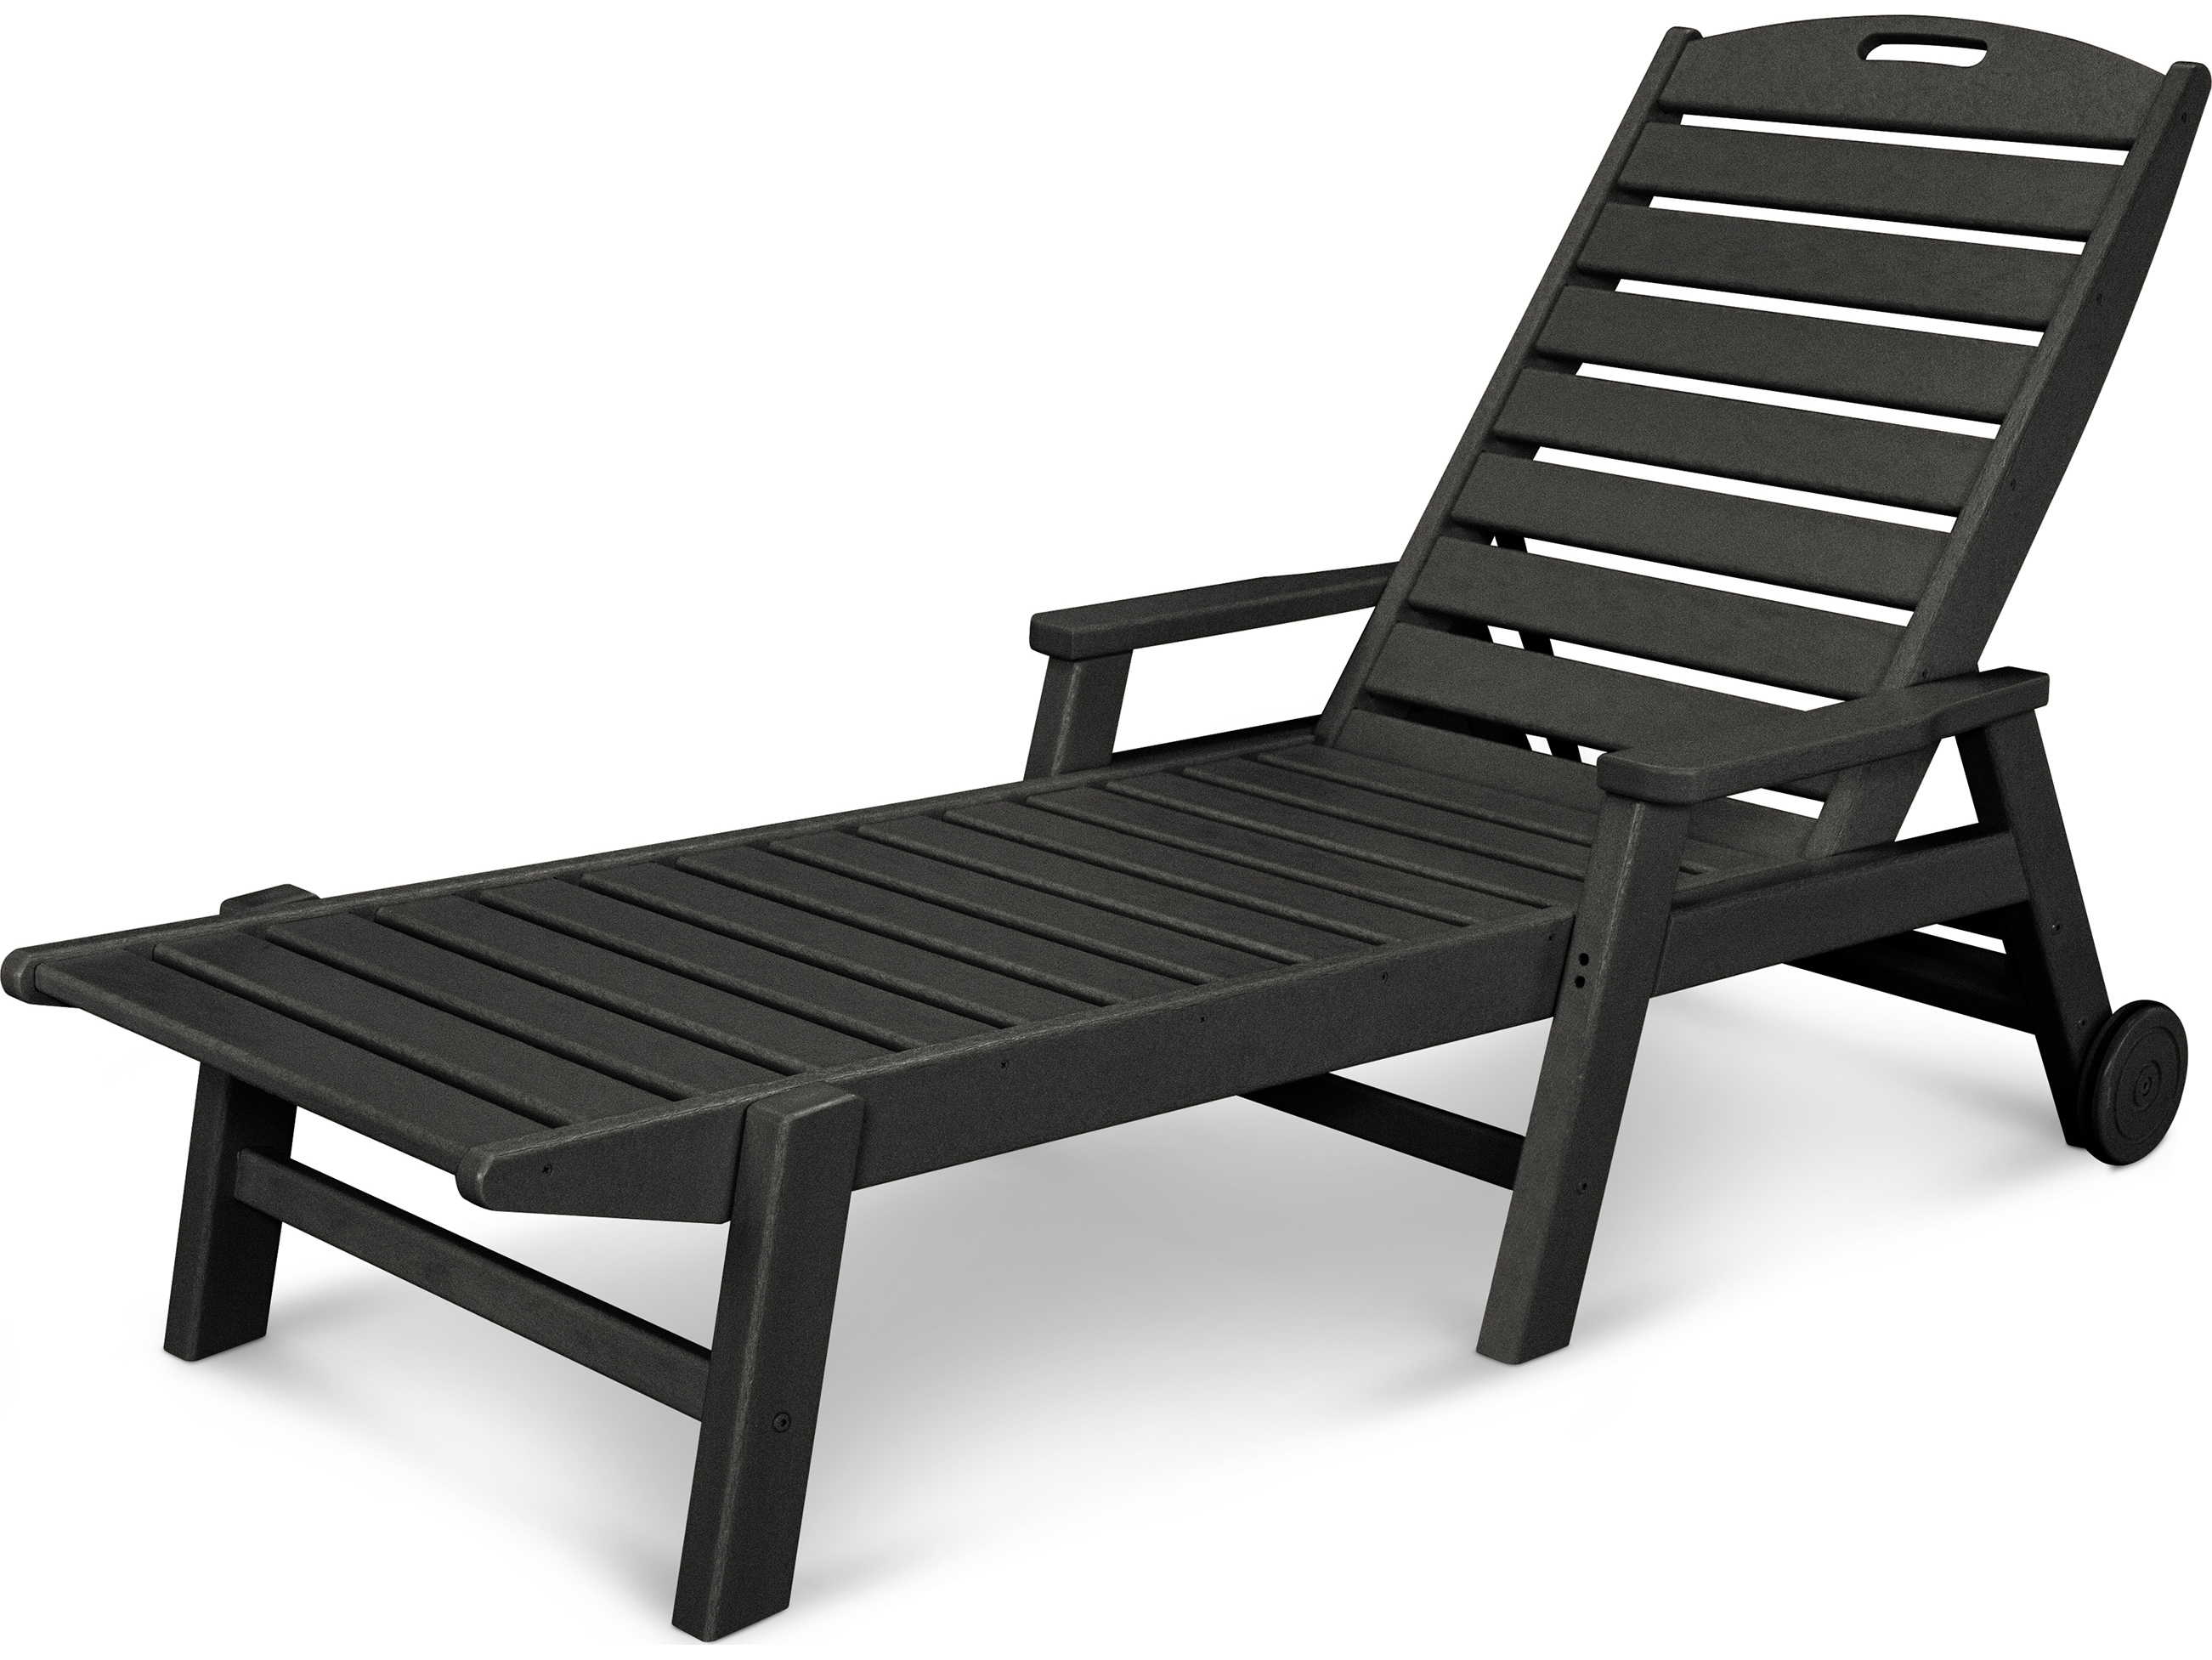 POLYWOOD Nautical Stackable Chaise Lounge With Wheels